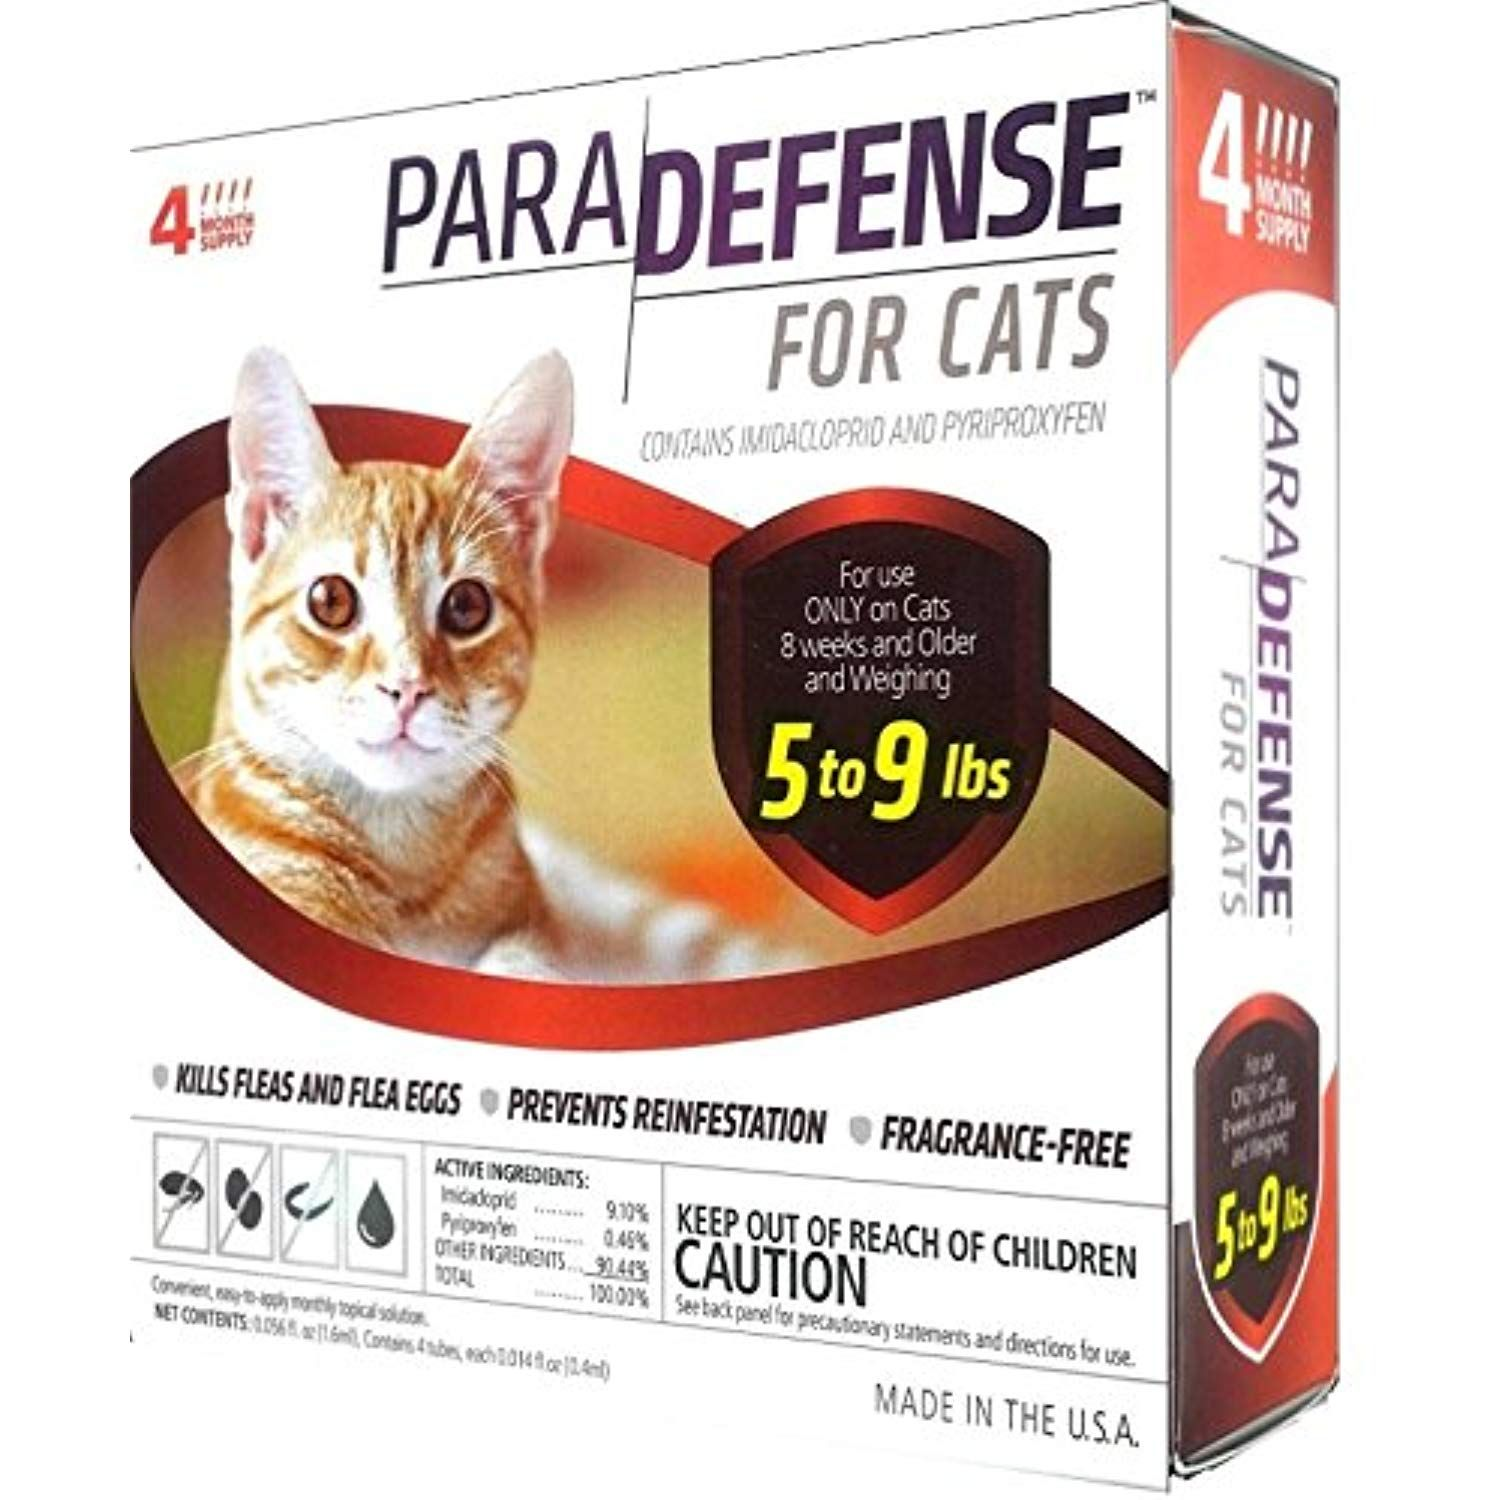 Para Defense 5 1 9 Lb Cat Pet Flea Control Supply Small For More Information Visit Image Link This Is An Affiliate Link Flea Control Fleas Pets Cats